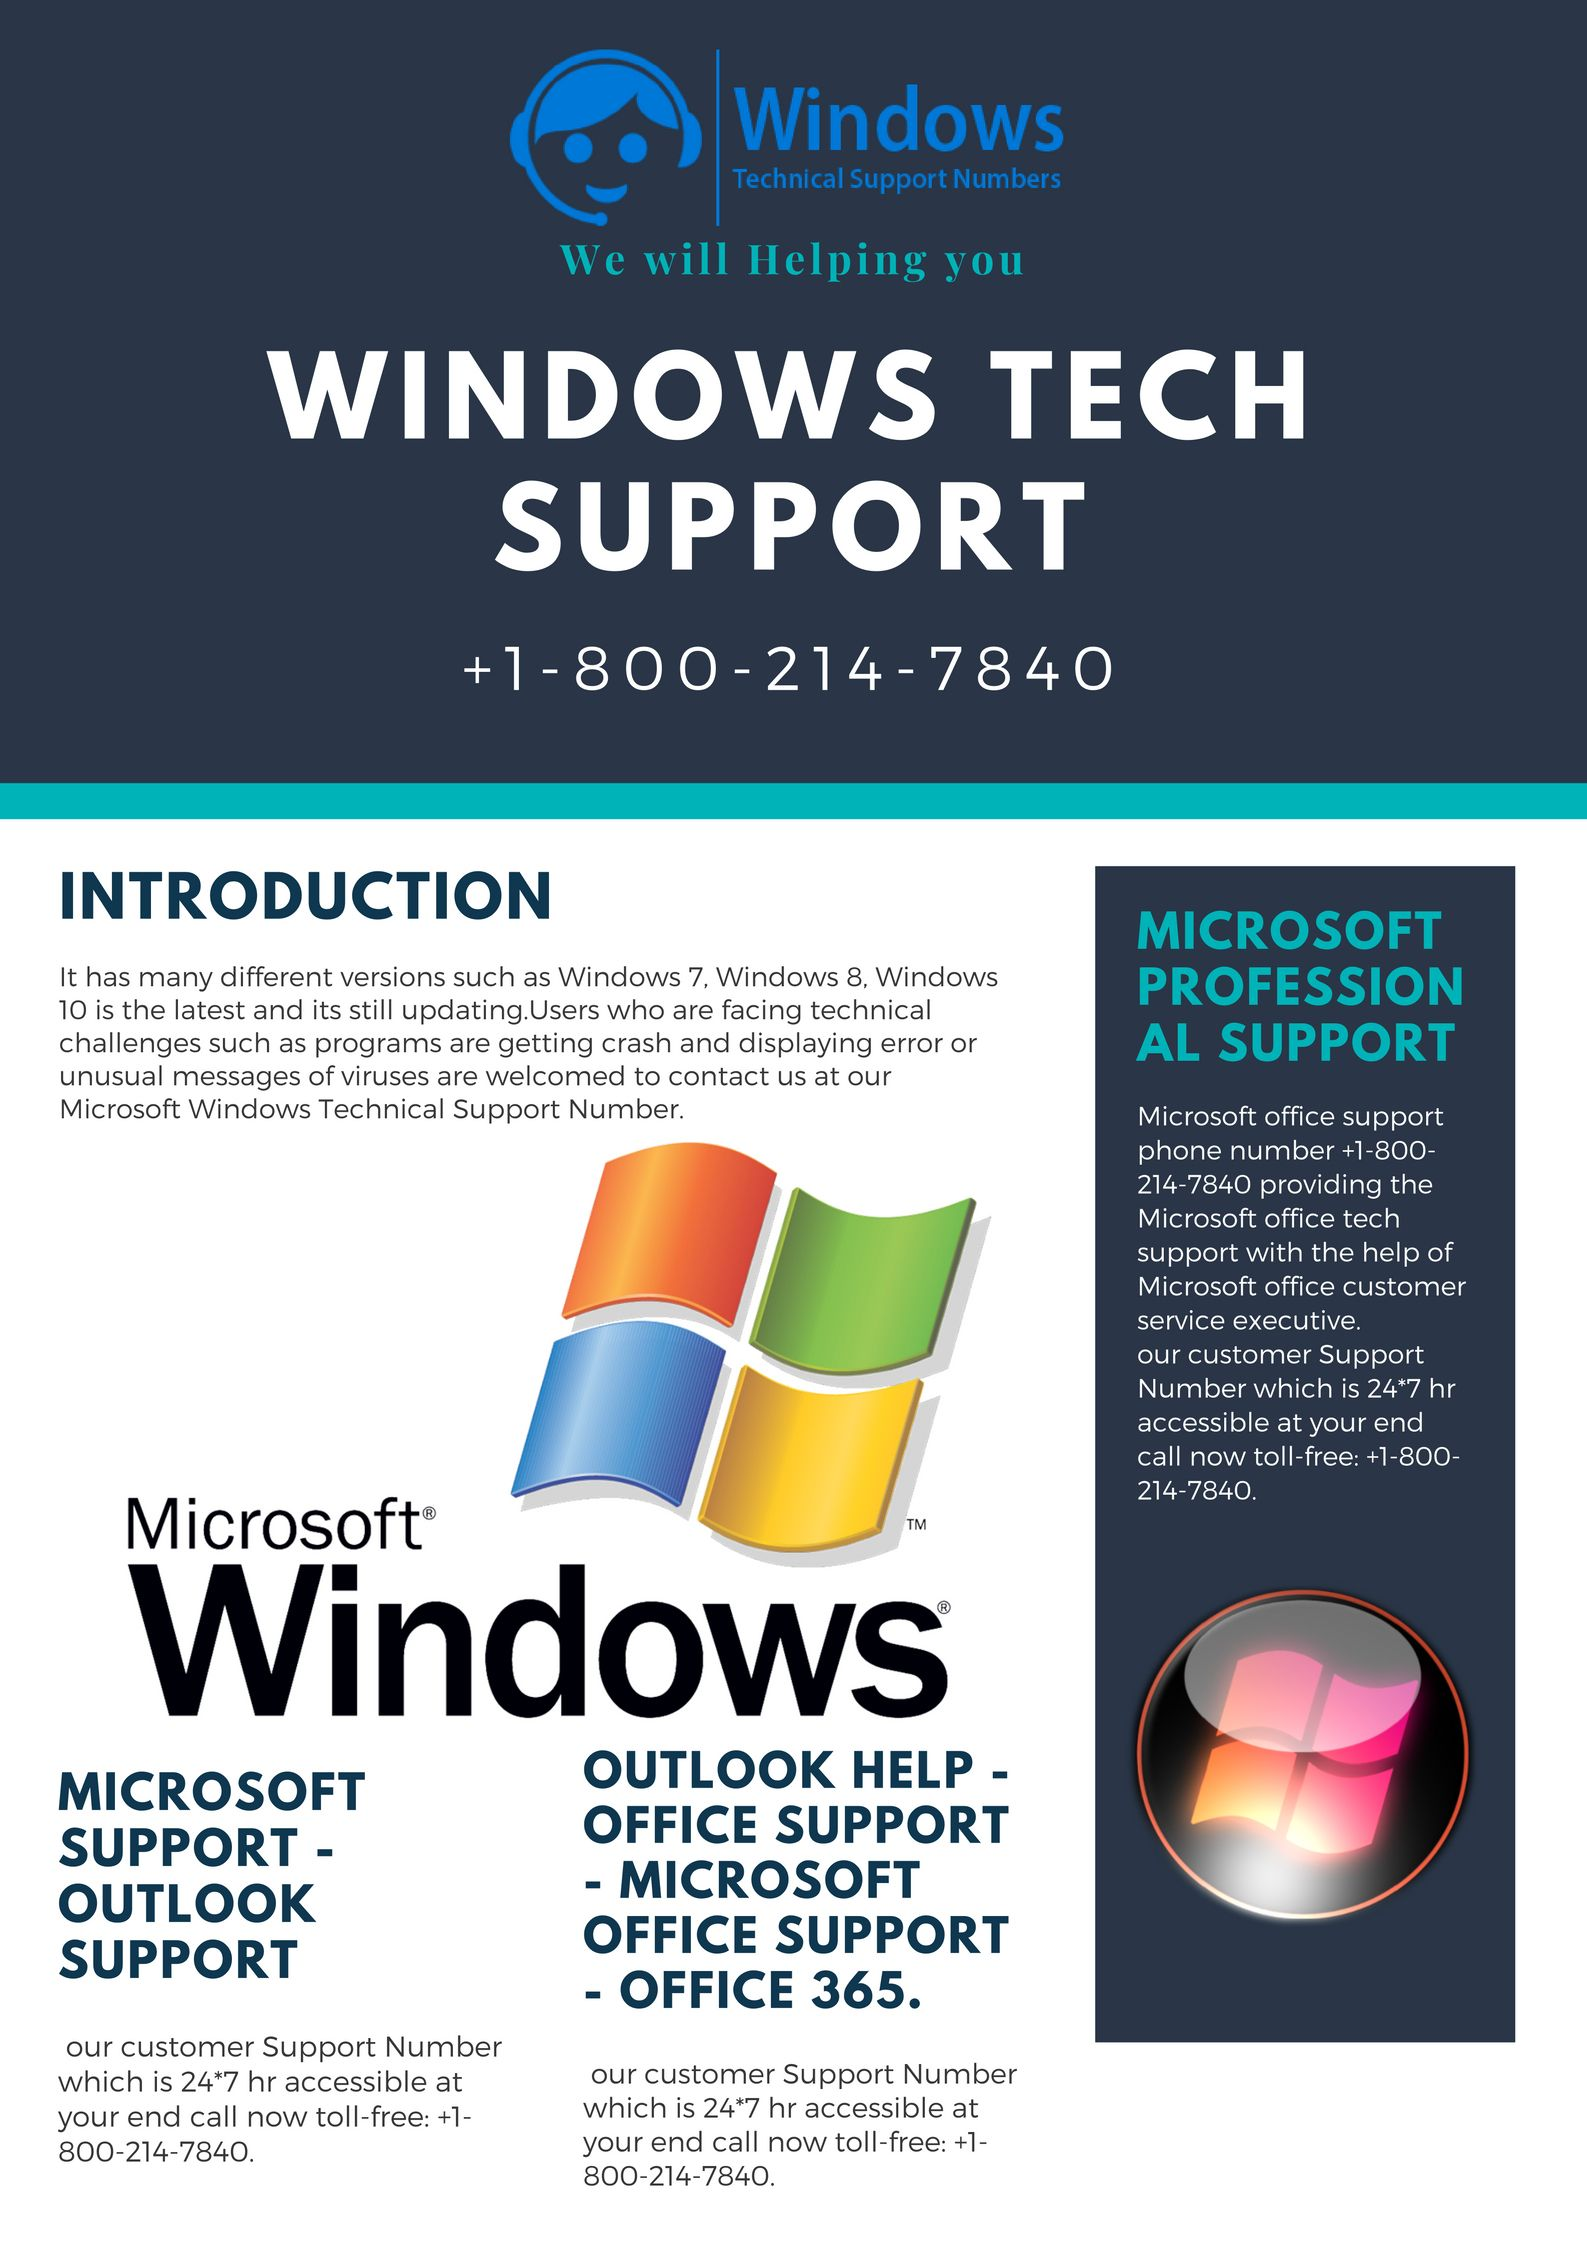 Microsoft Office Windows 7 Microsoft Windows Tech Support Phone Number 1 800 214 7840 Is For